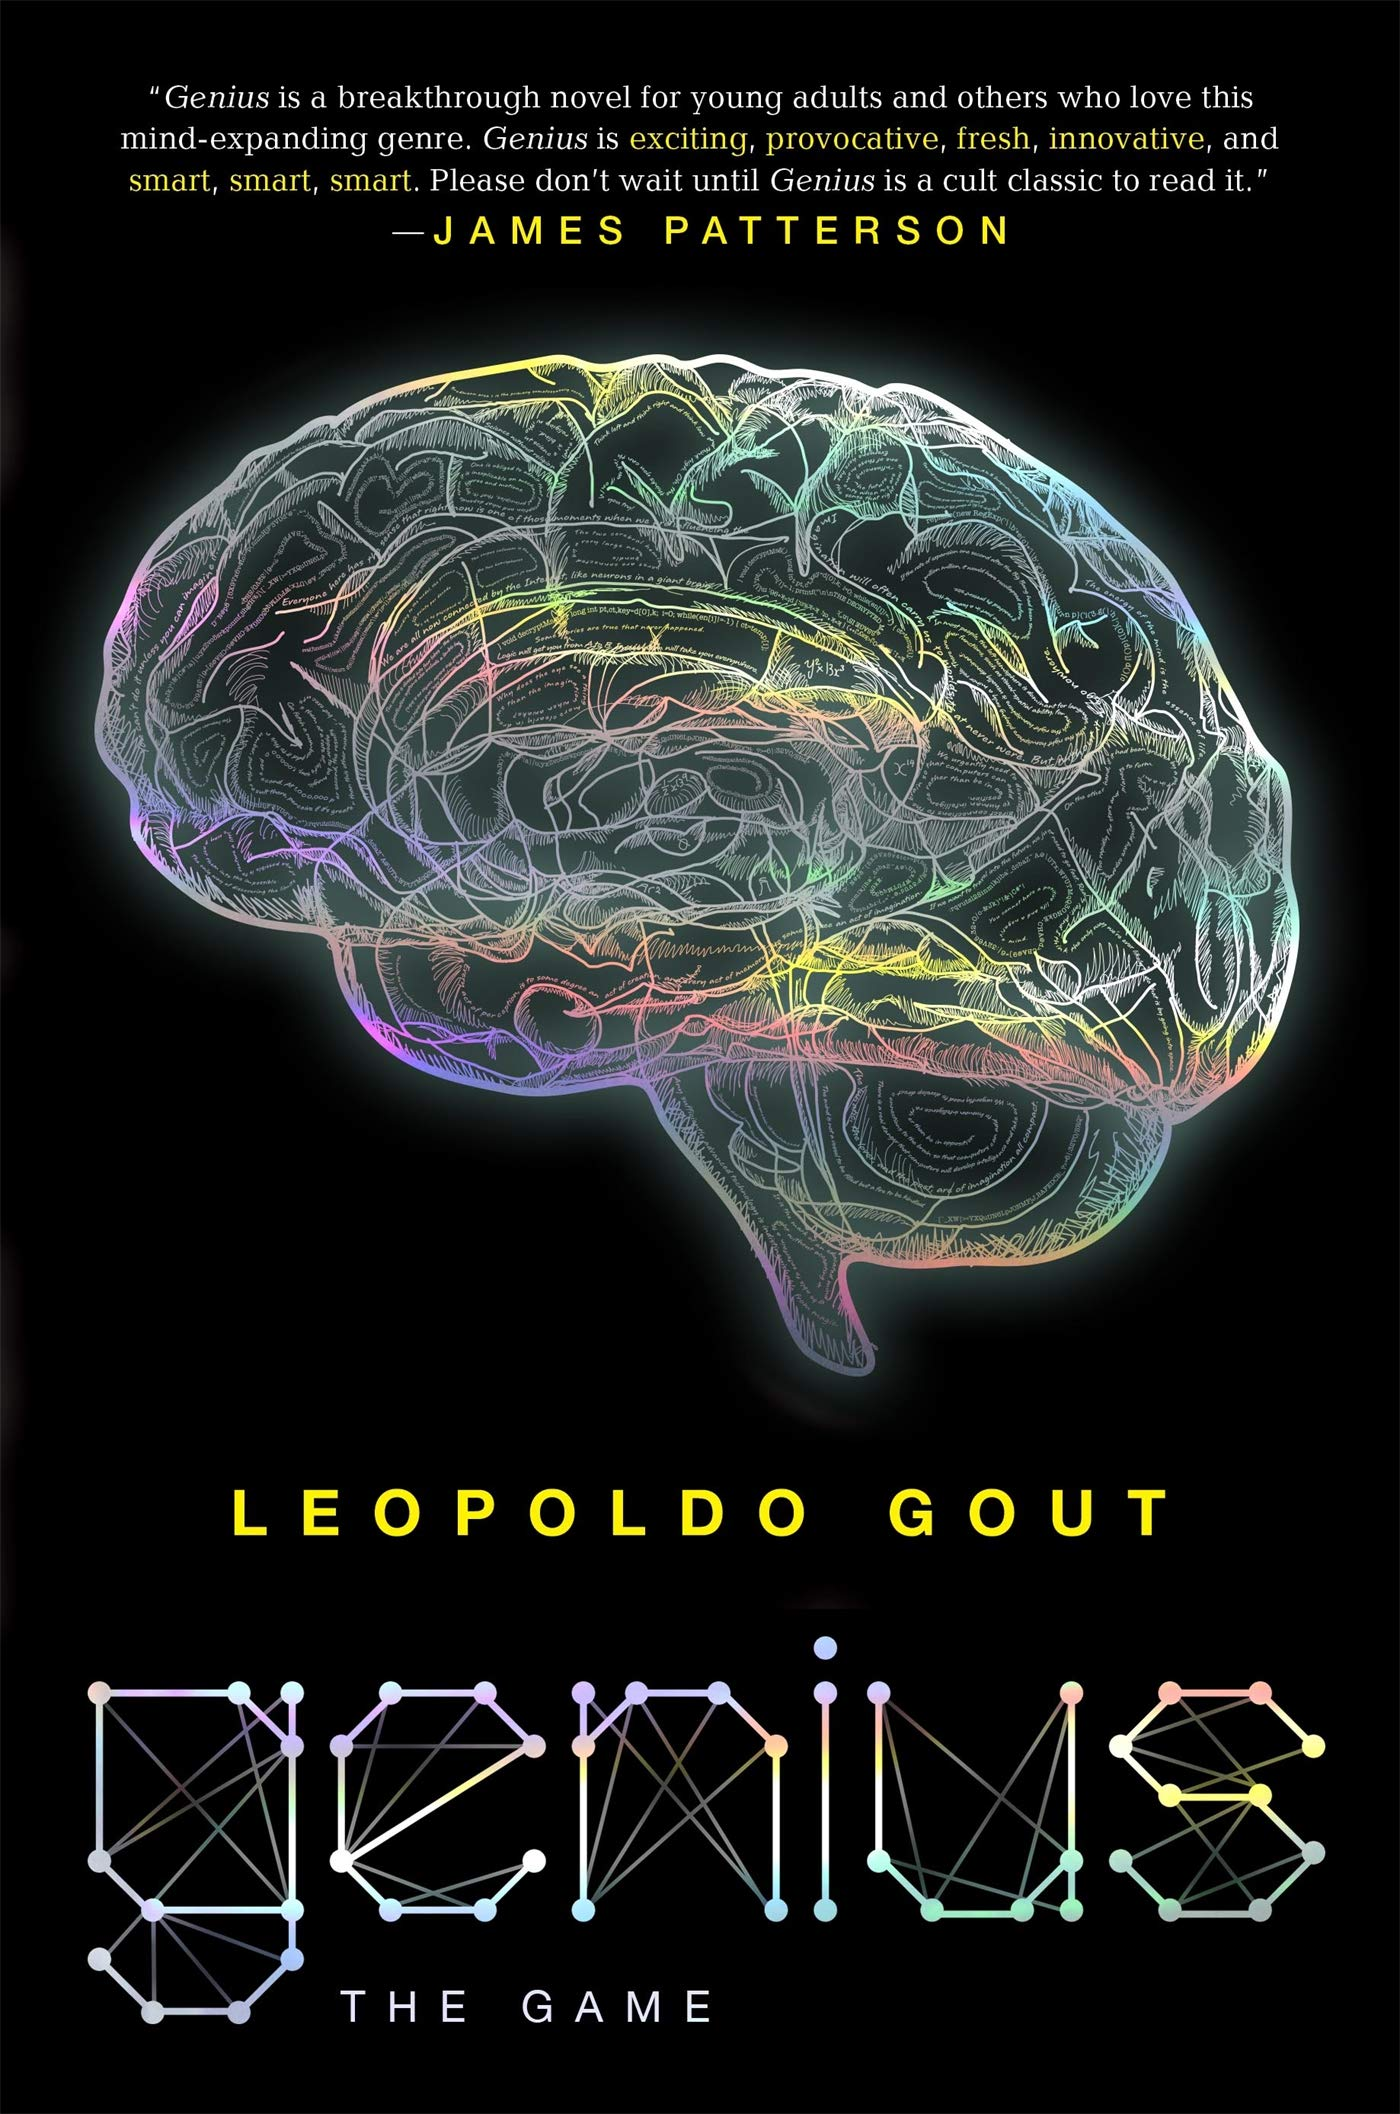 Books for kids who like video games: Genius: The Game by Leopoldo Gout